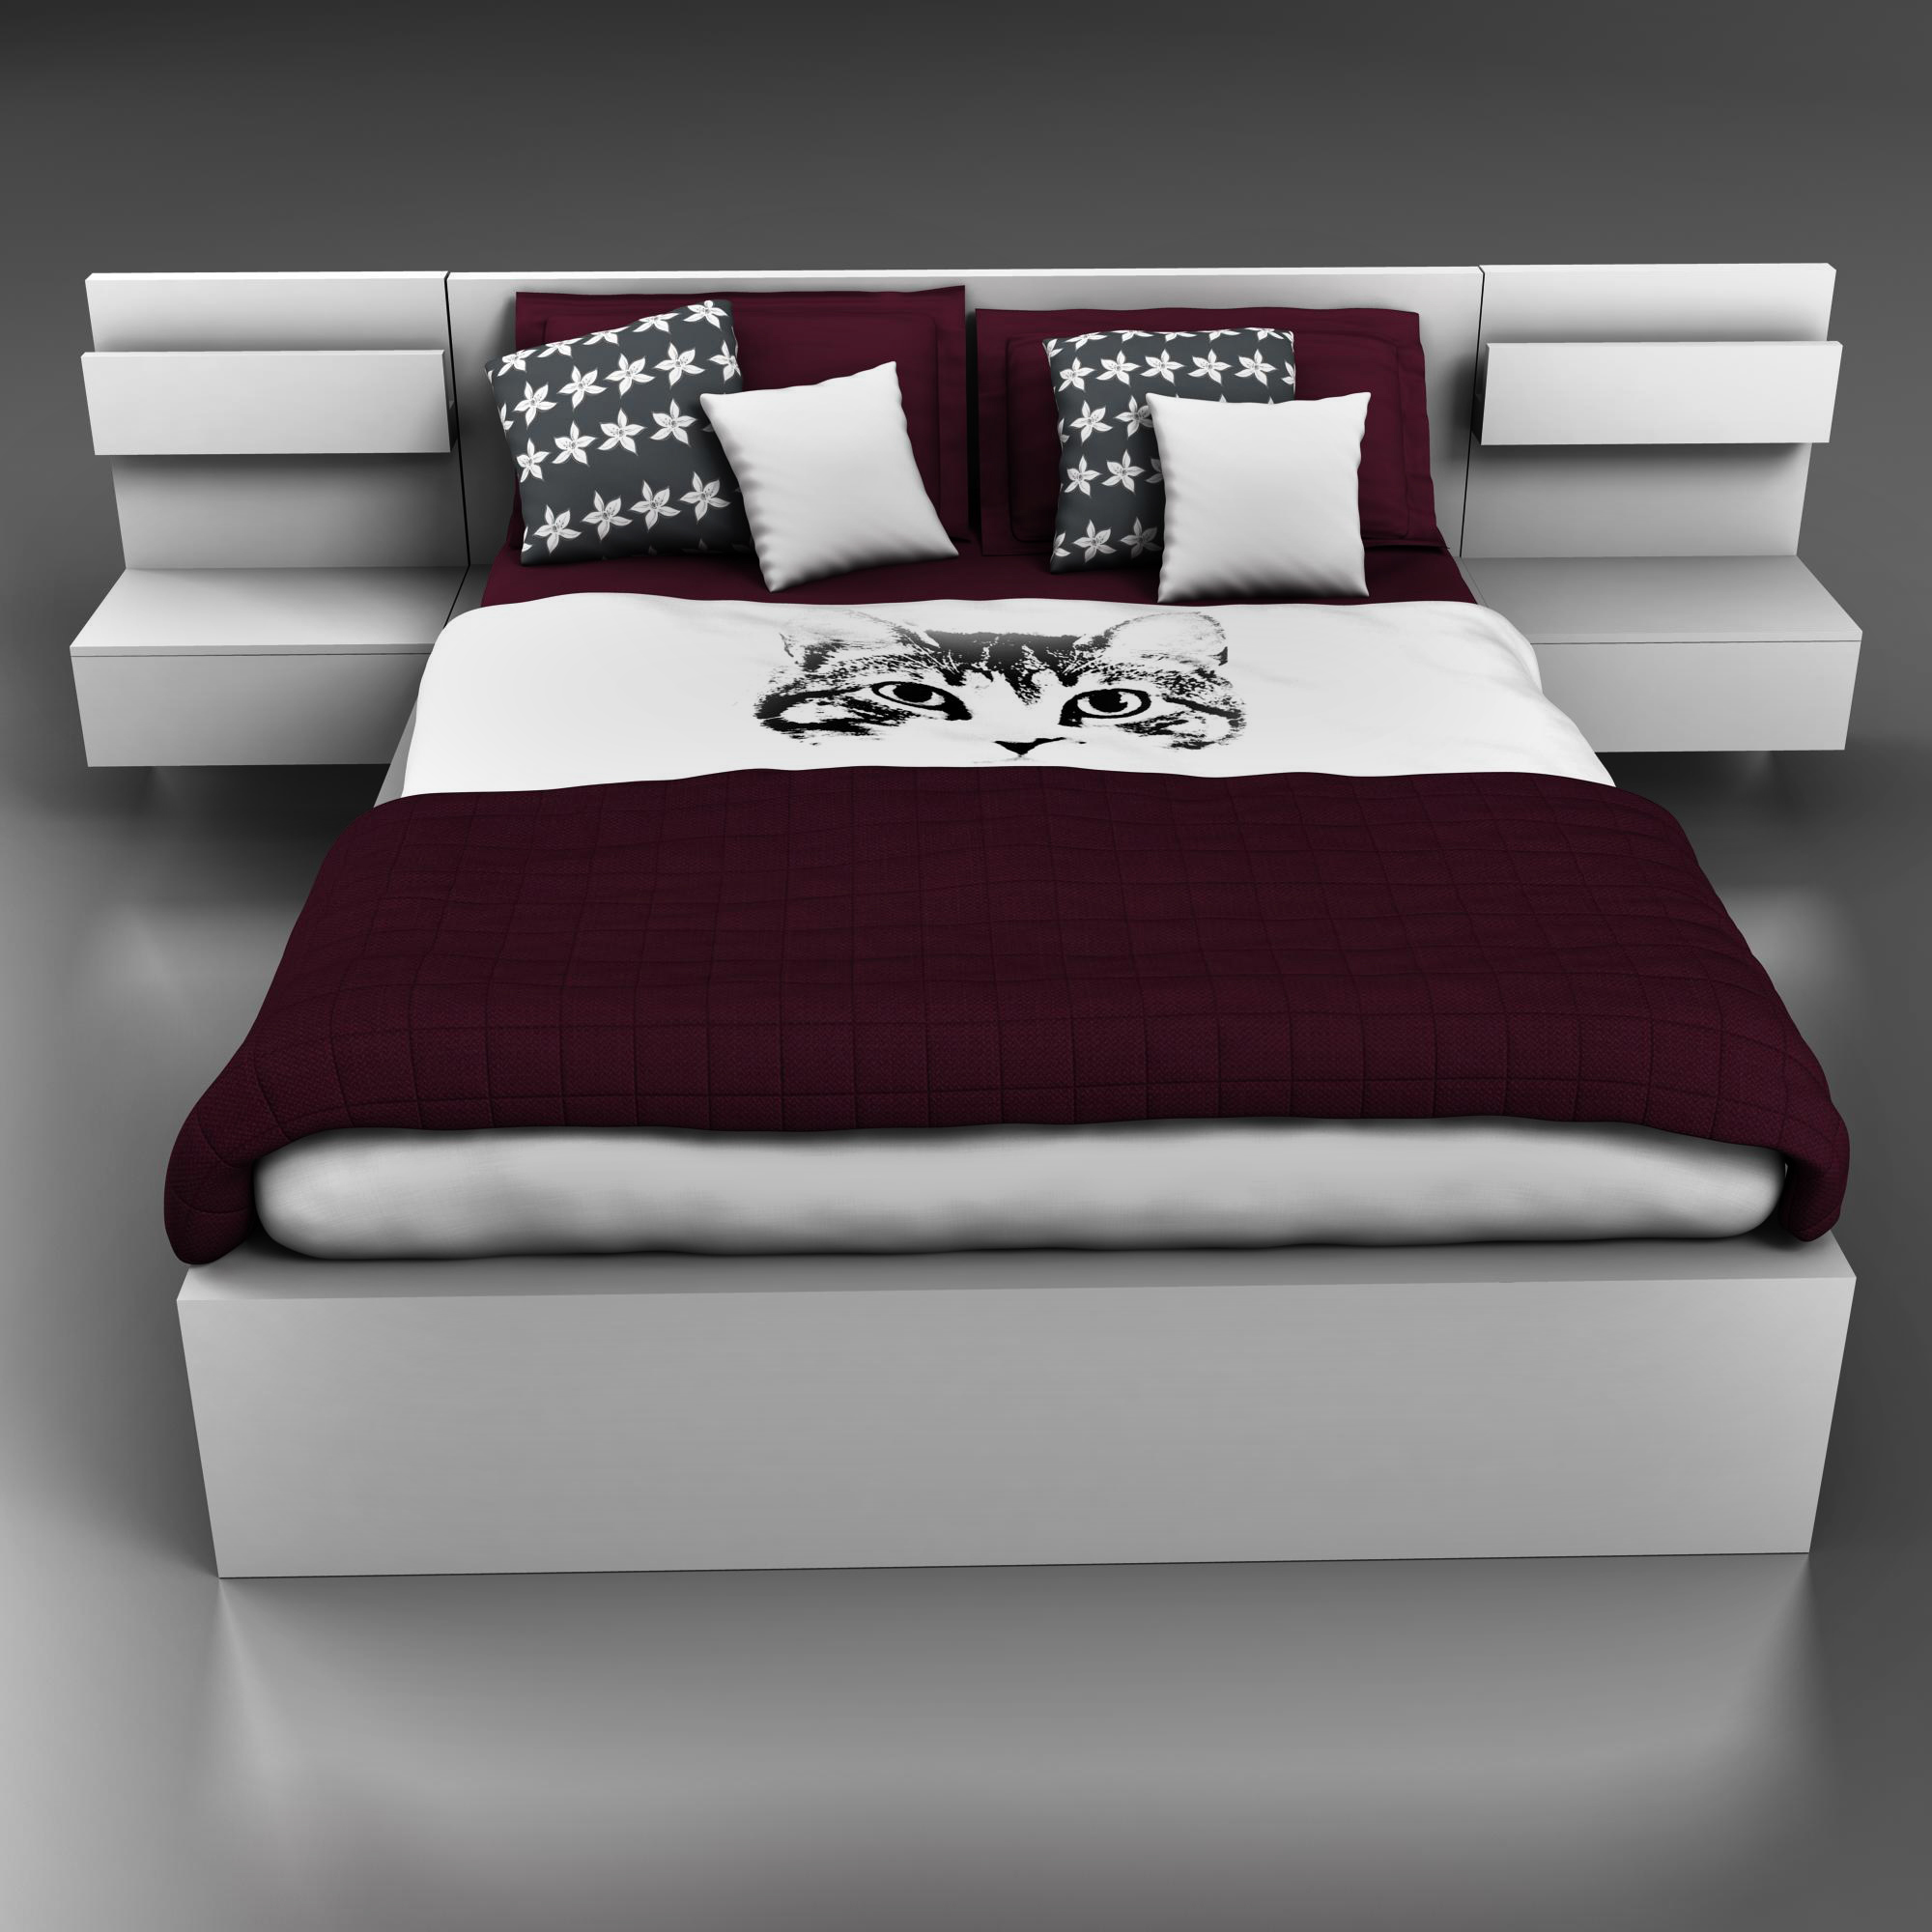 bed design 3d model 3ds max fbx ma mb obj 157298